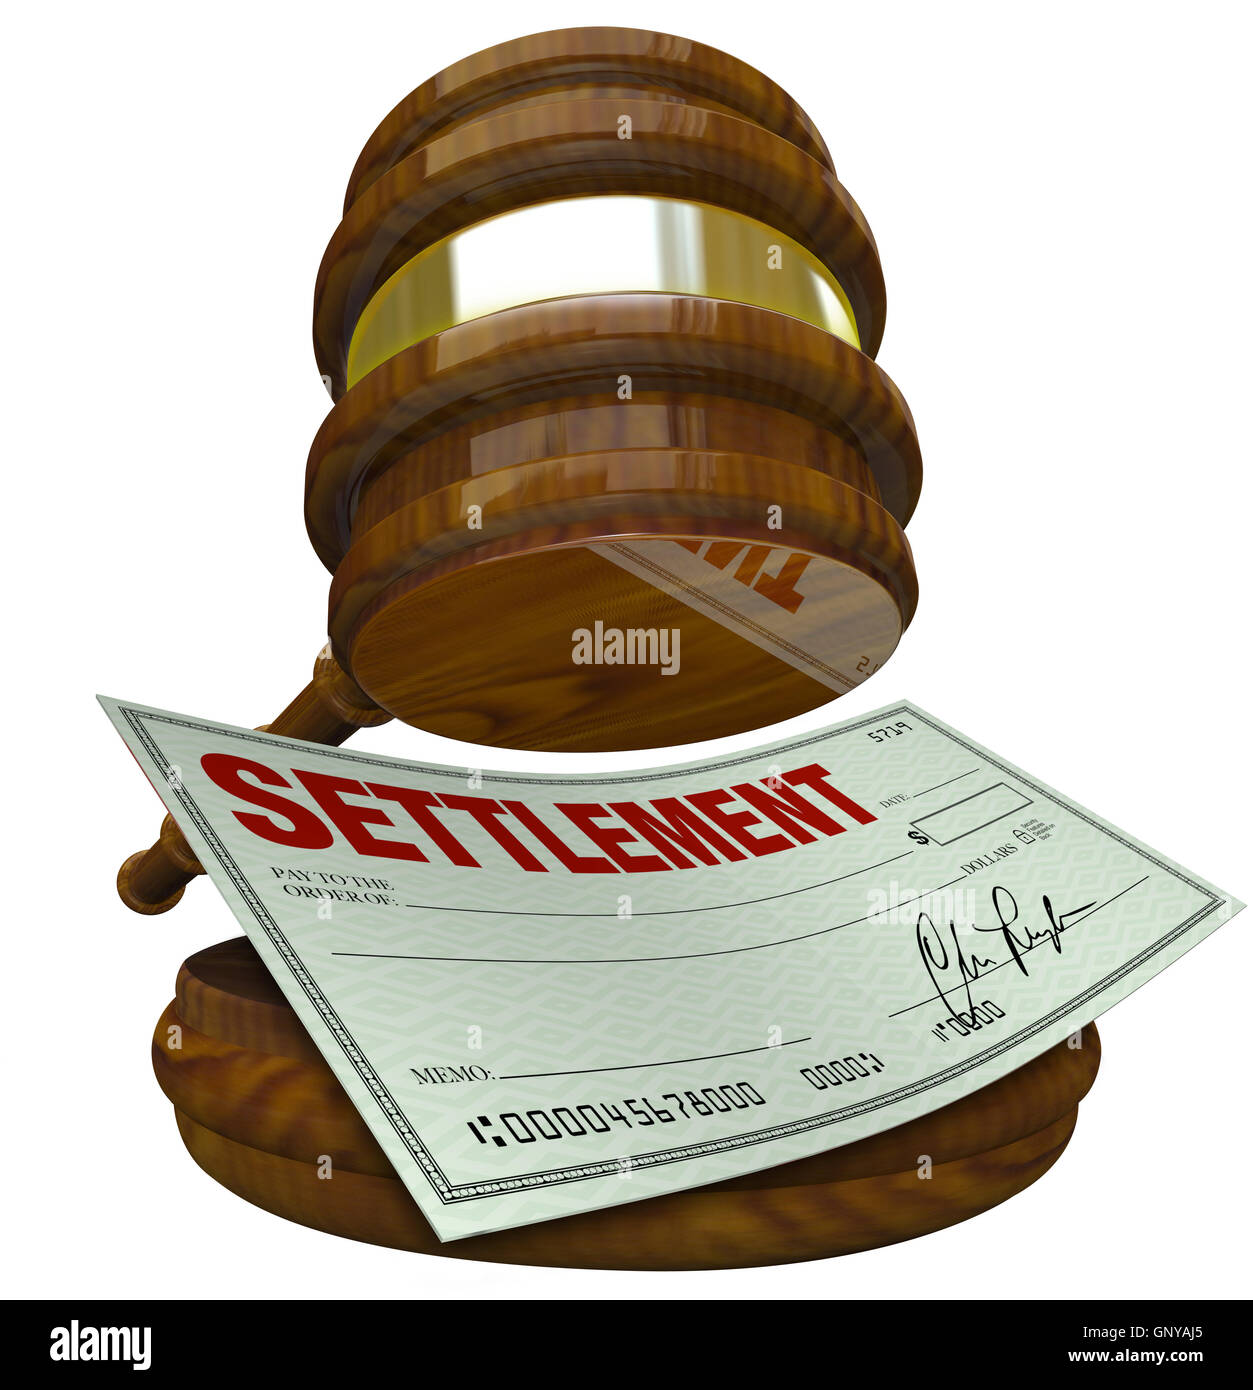 Gavel and Check - Legal Settlement Cash Between Parties - Stock Image